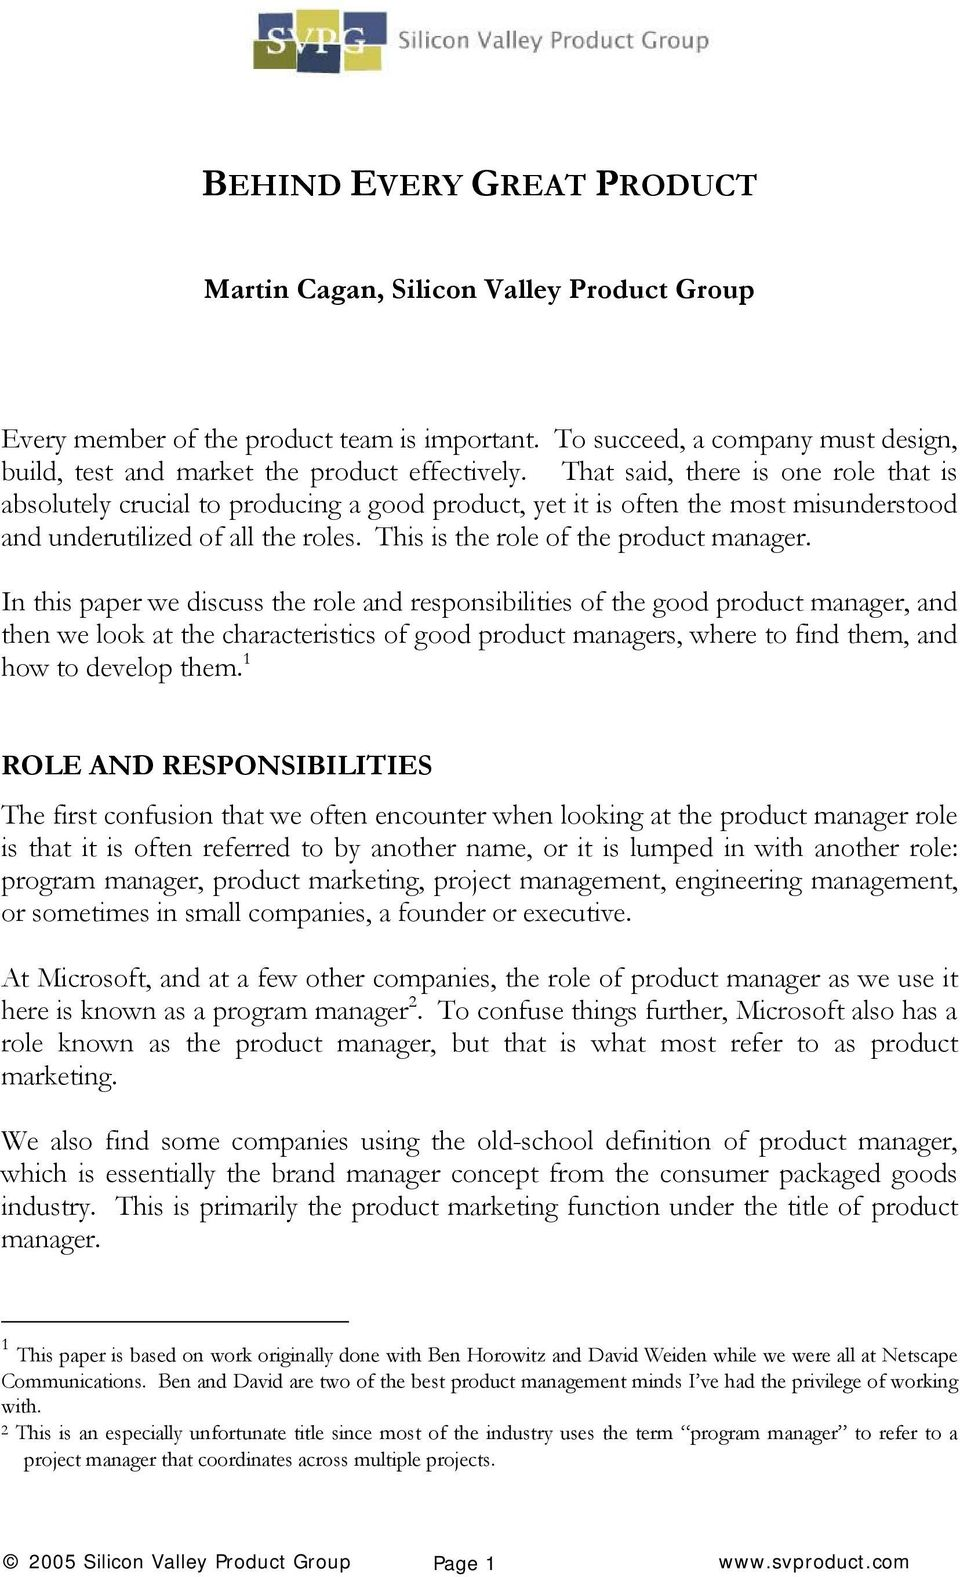 In this paper we discuss the role and responsibilities of the good product manager, and then we look at the characteristics of good product managers, where to find them, and how to develop them.